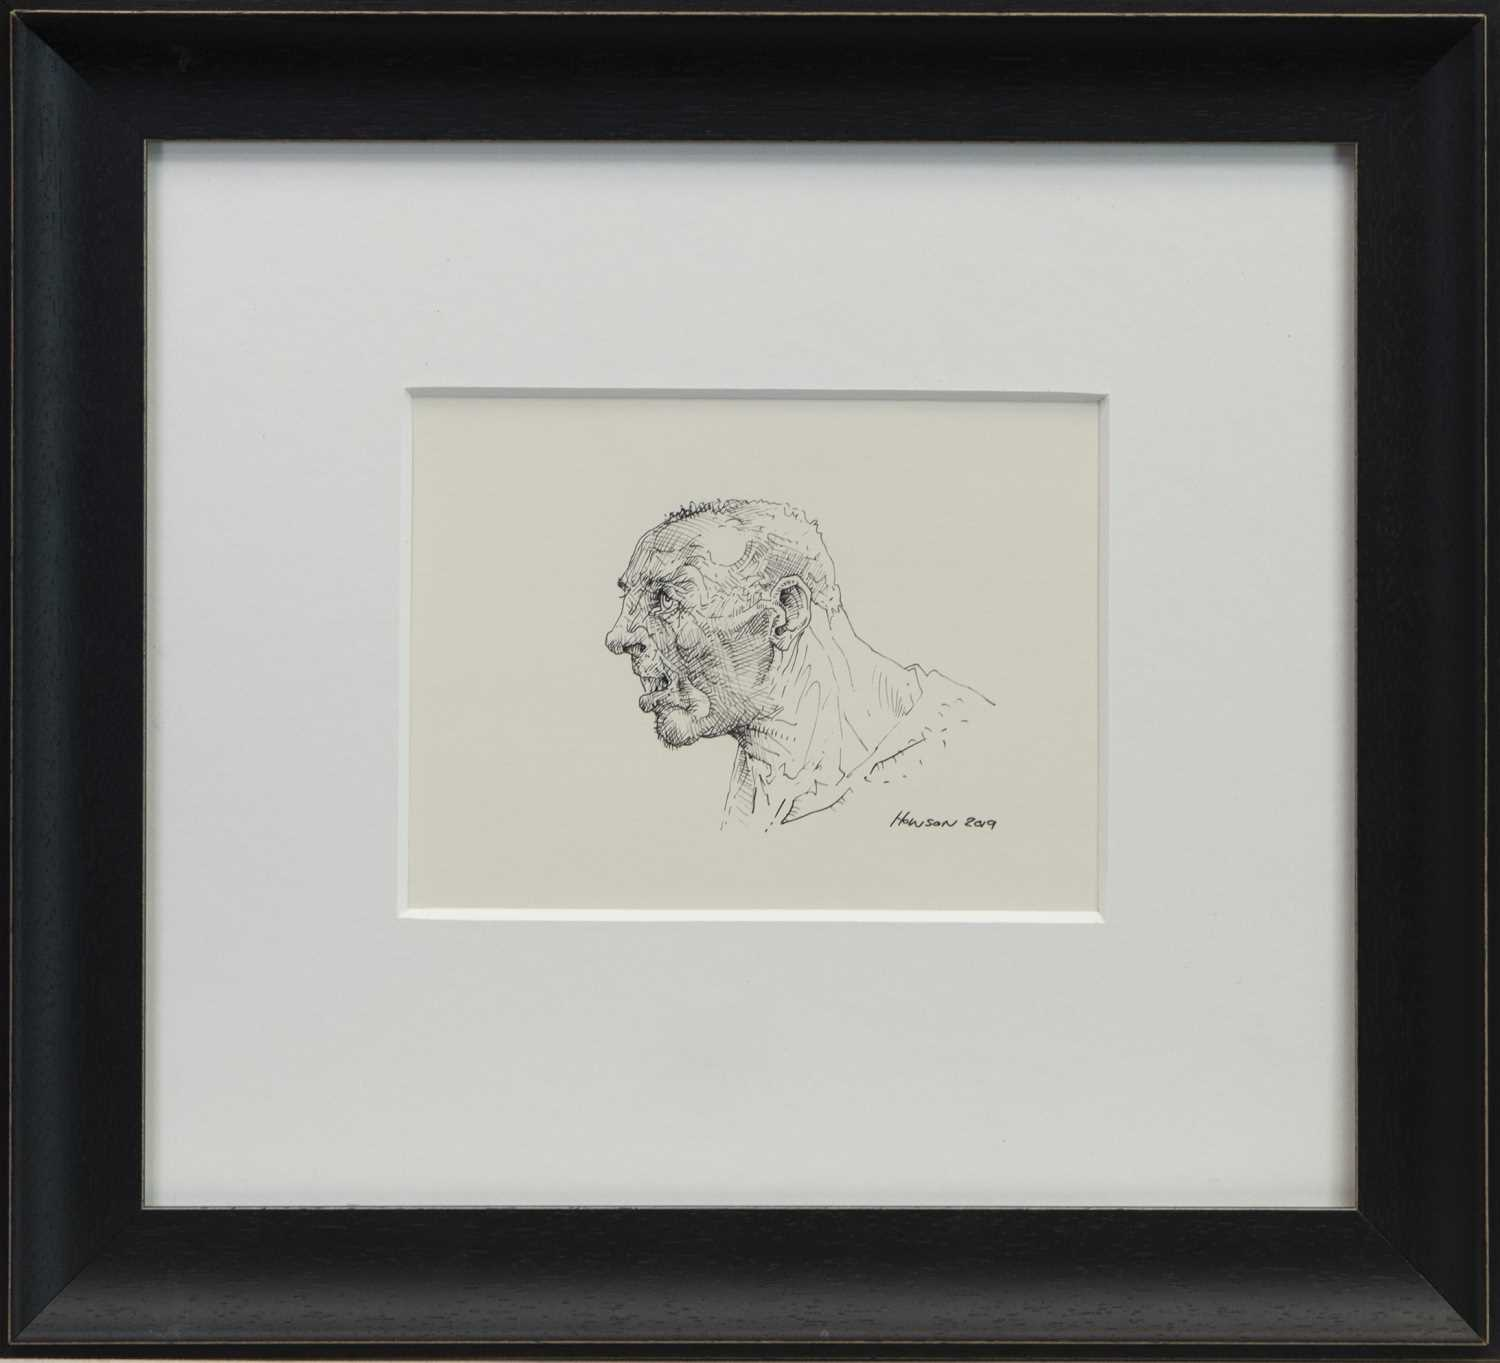 Lot 765 - AN UNTITLED INK SKETCH BY PETER HOWSON